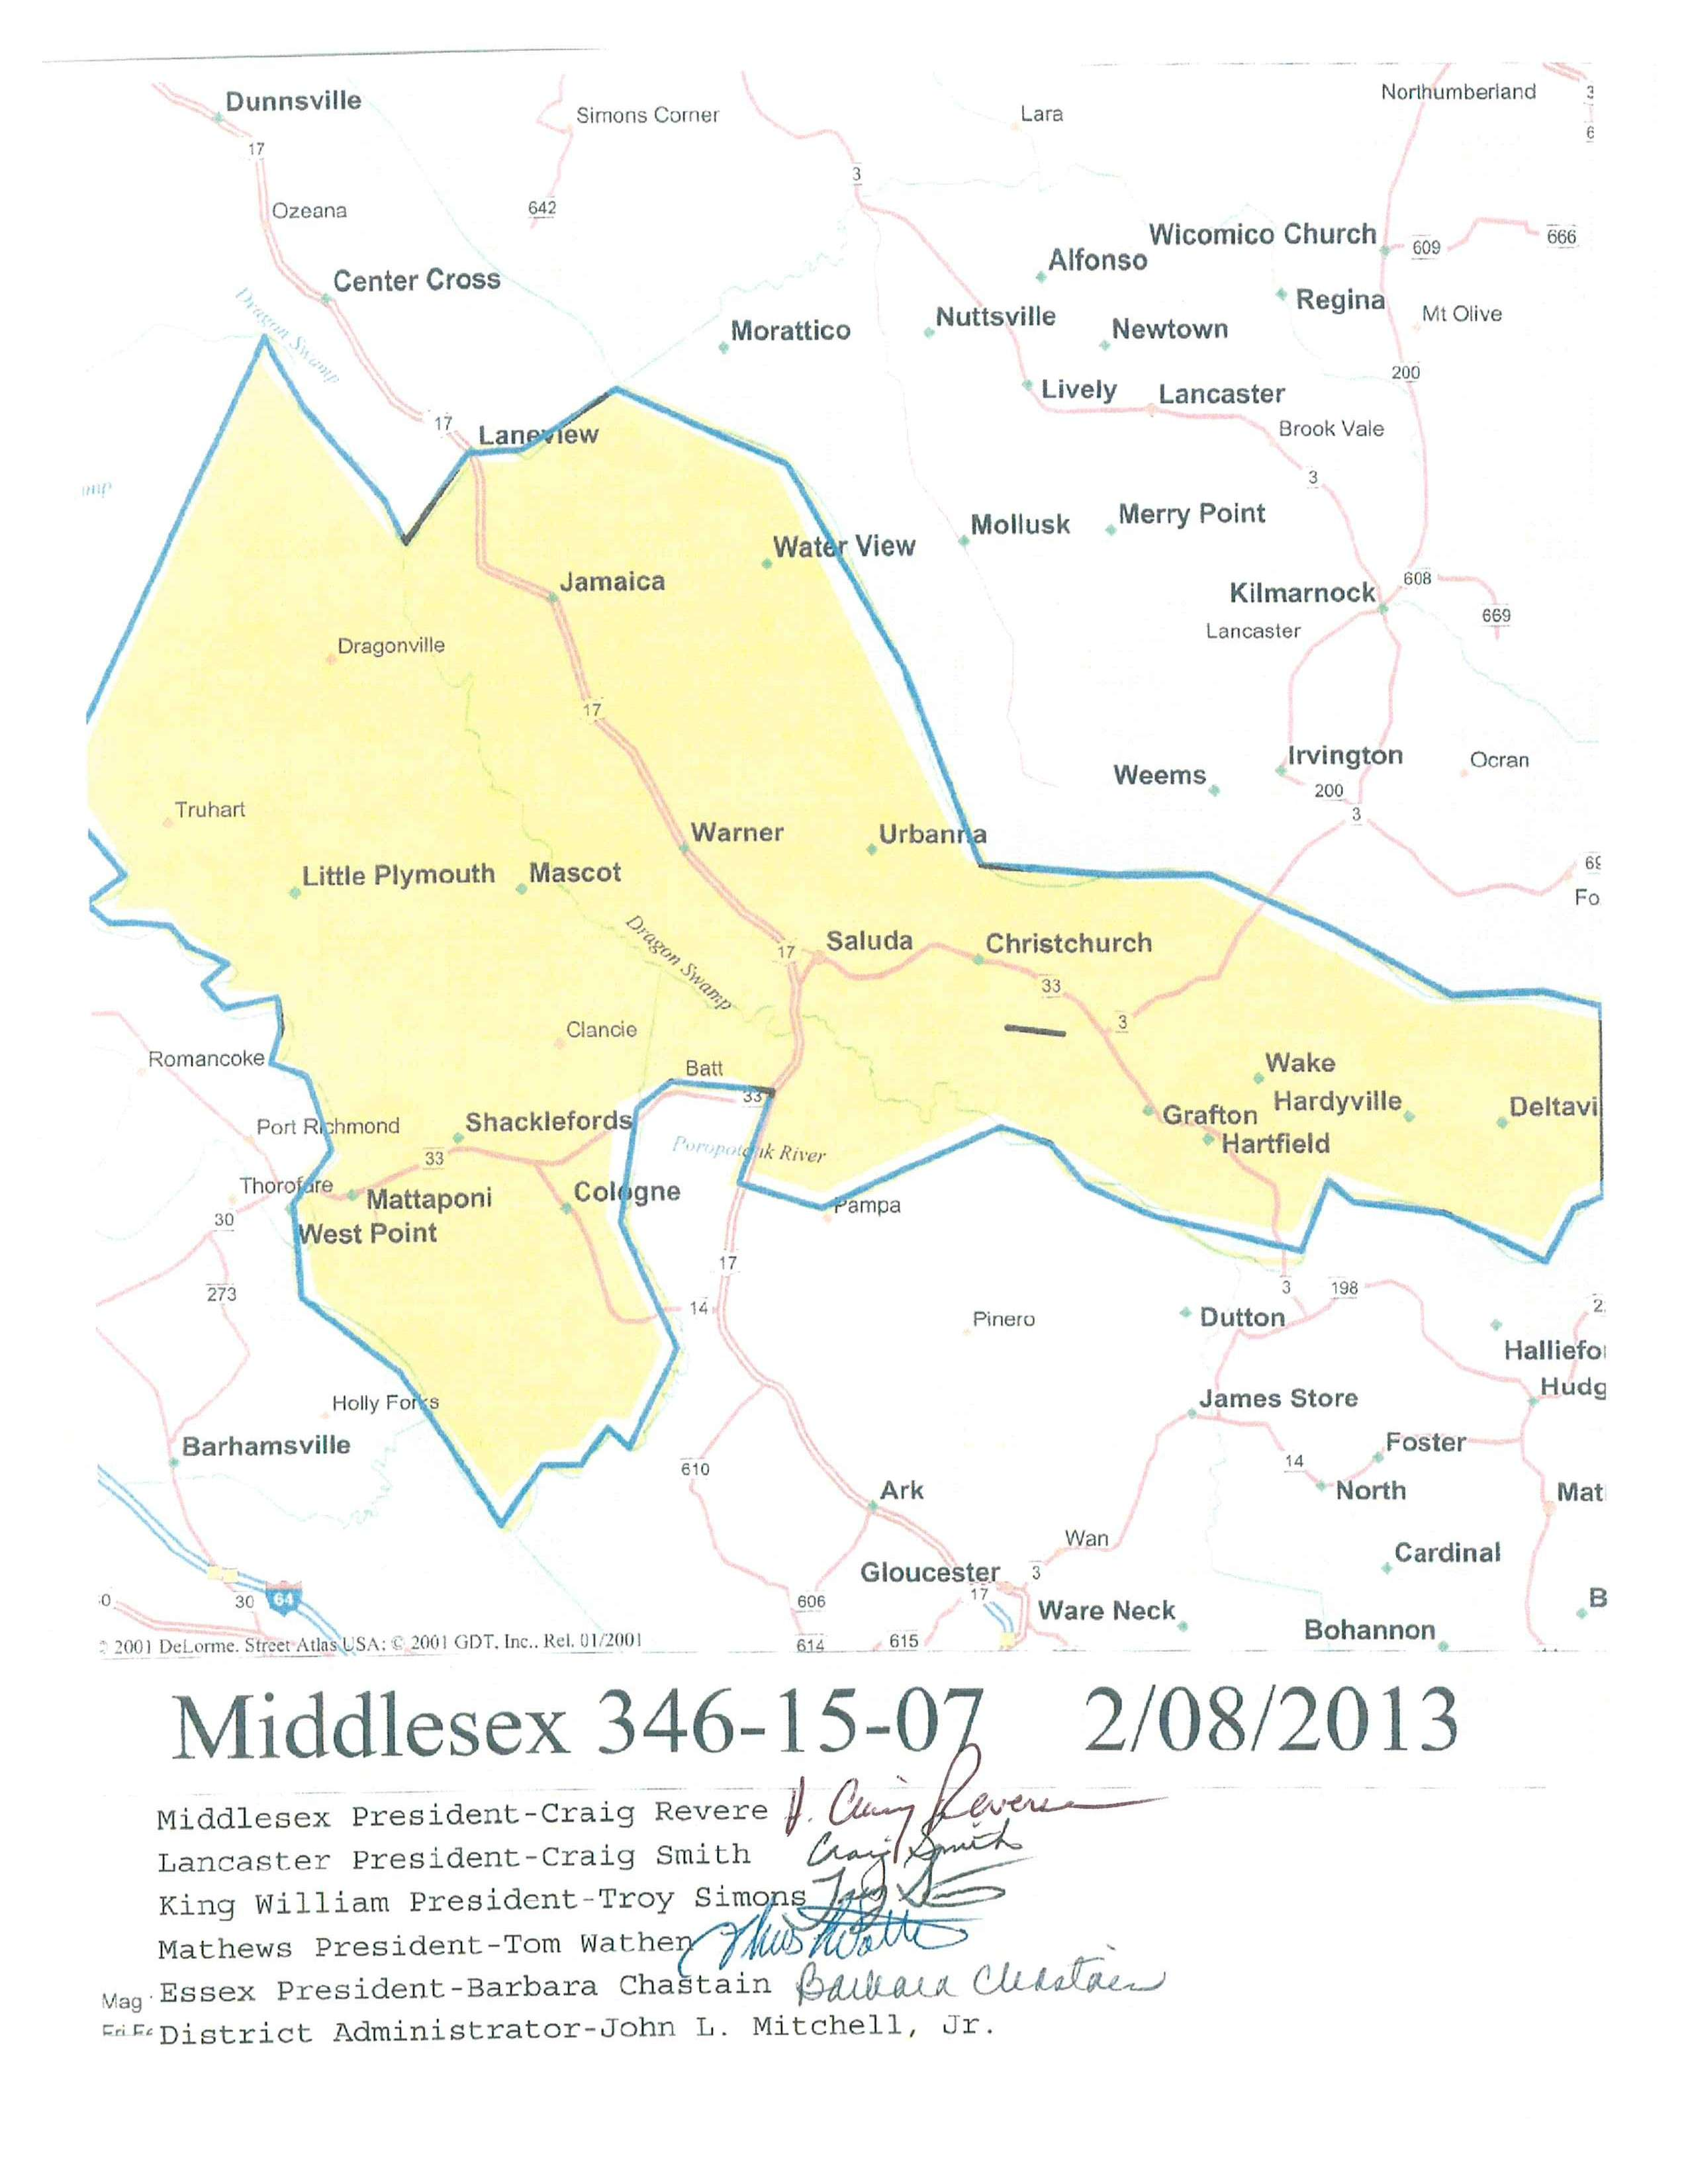 2013-Middlesex.jpg